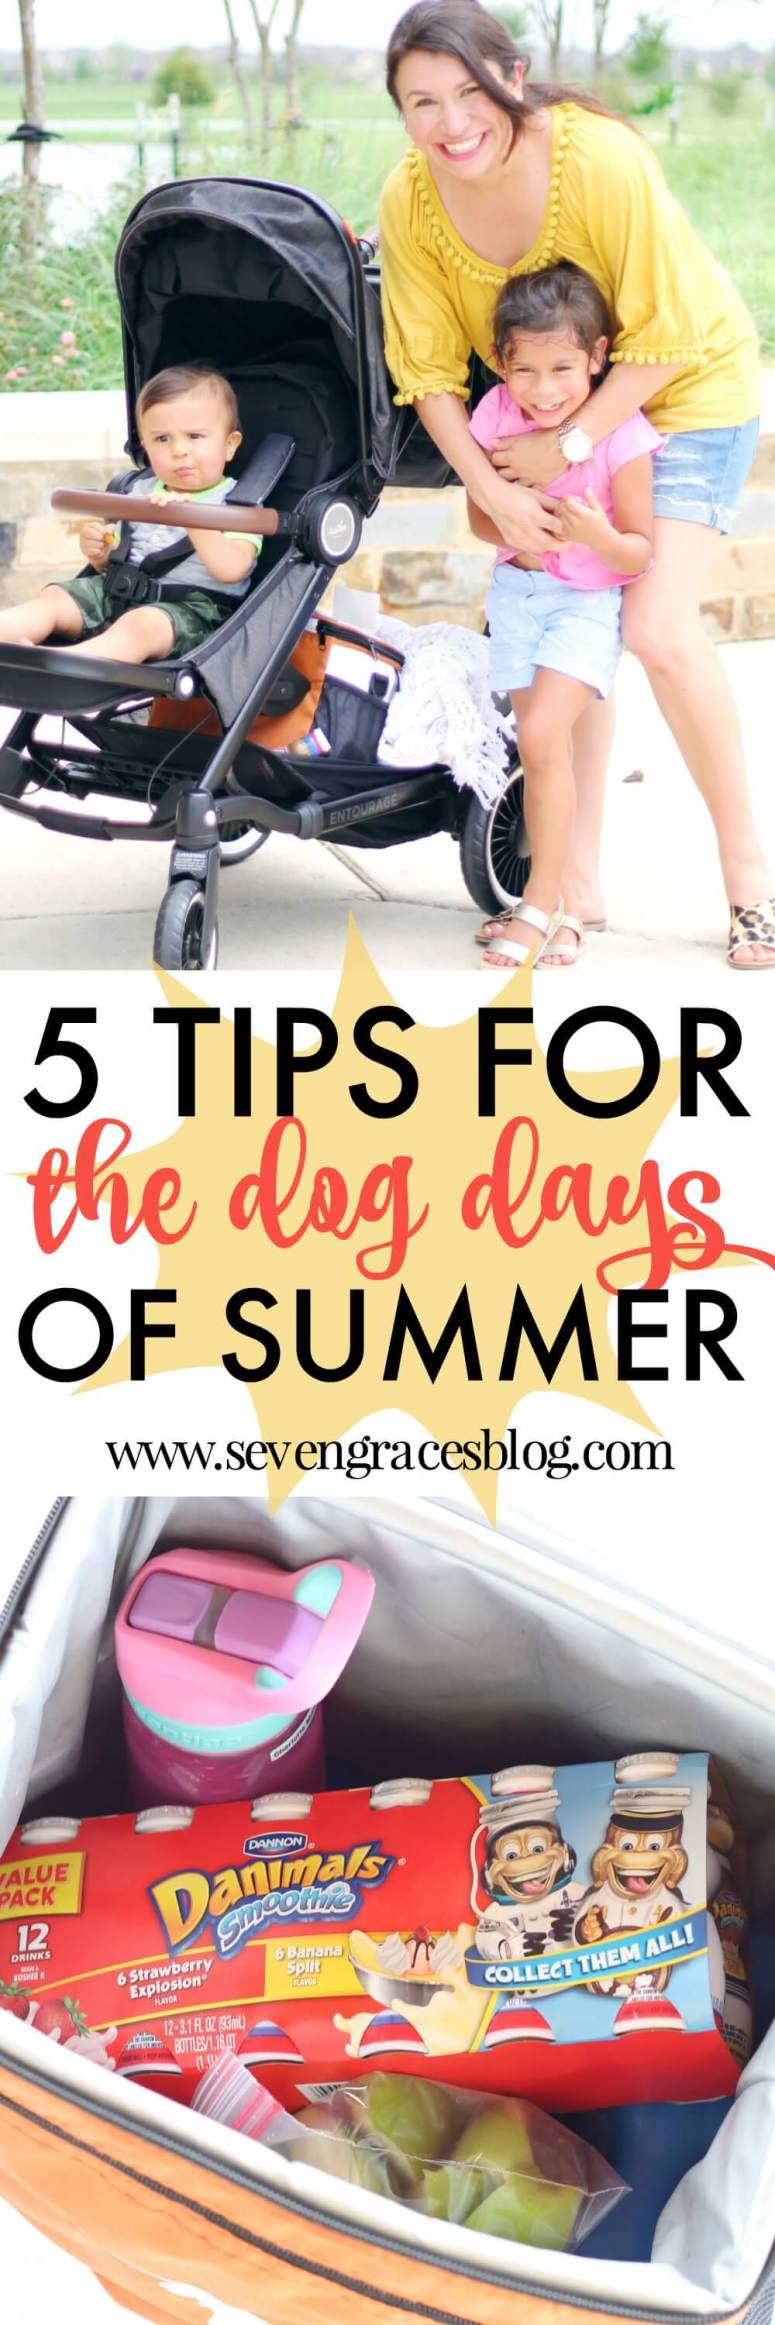 5 Tips for the Dog Days of Summer: What you need to get you through the last stretch of summer days with kids.